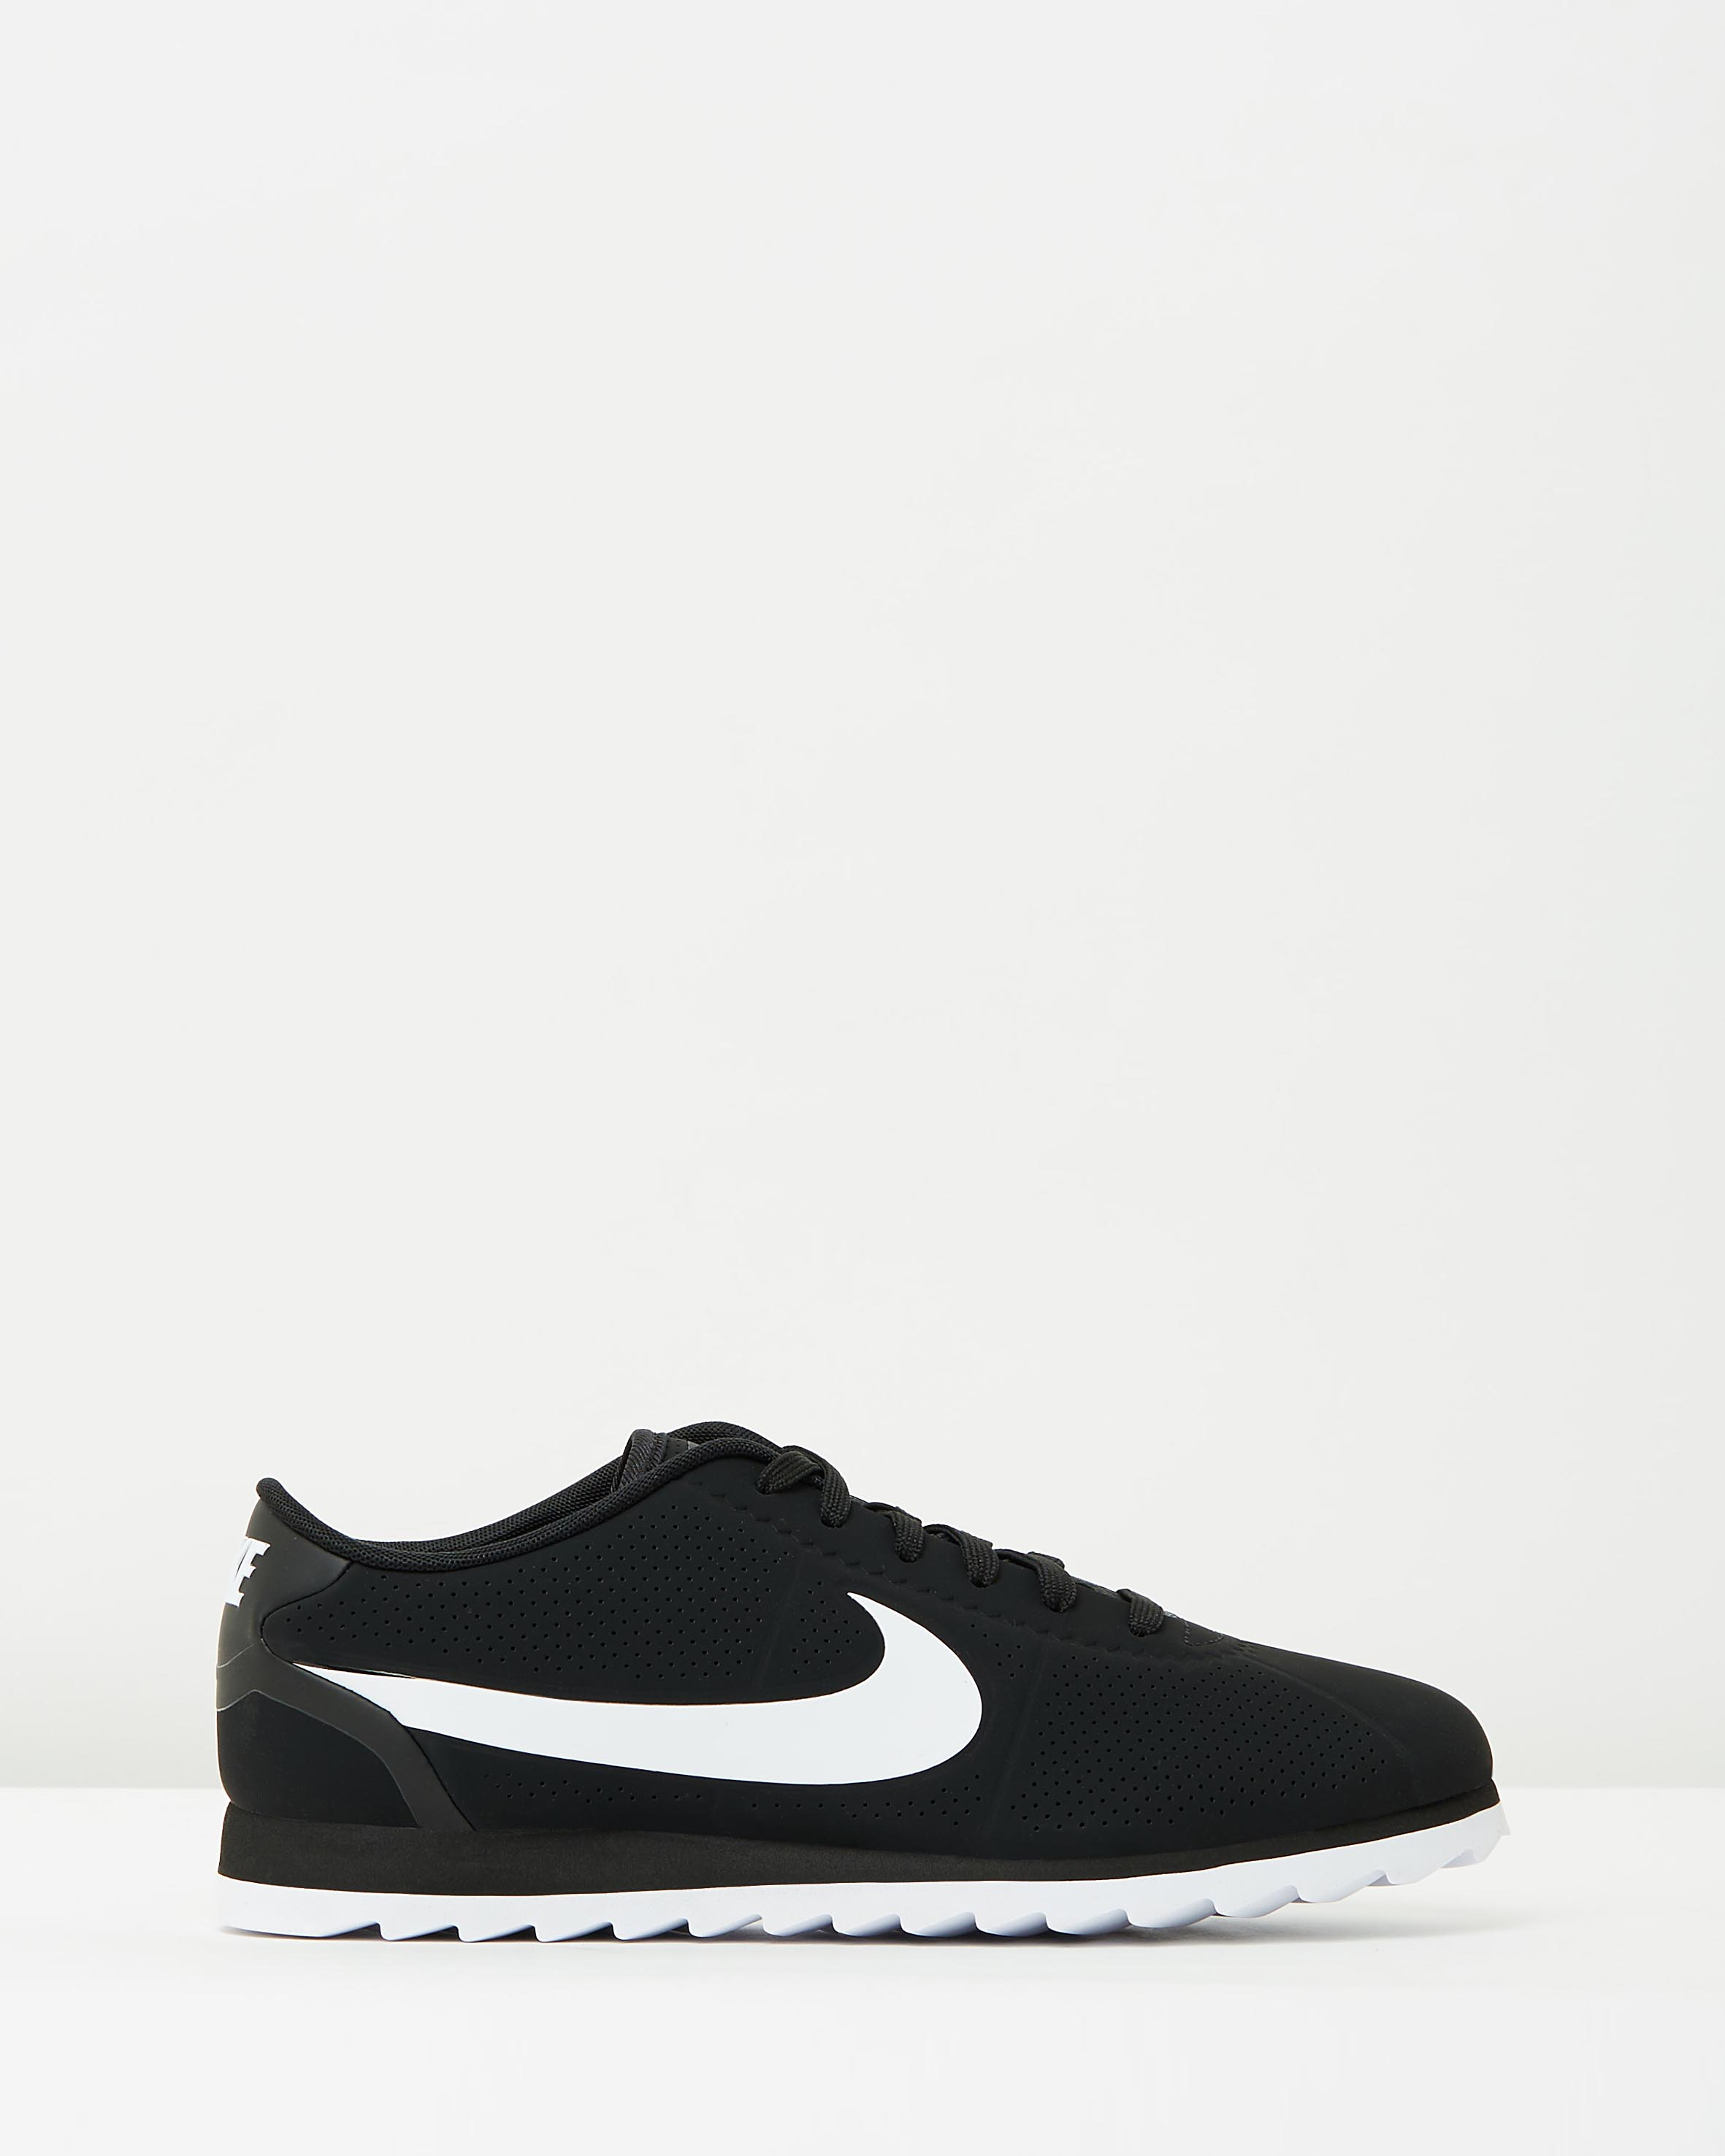 nike cortez black women